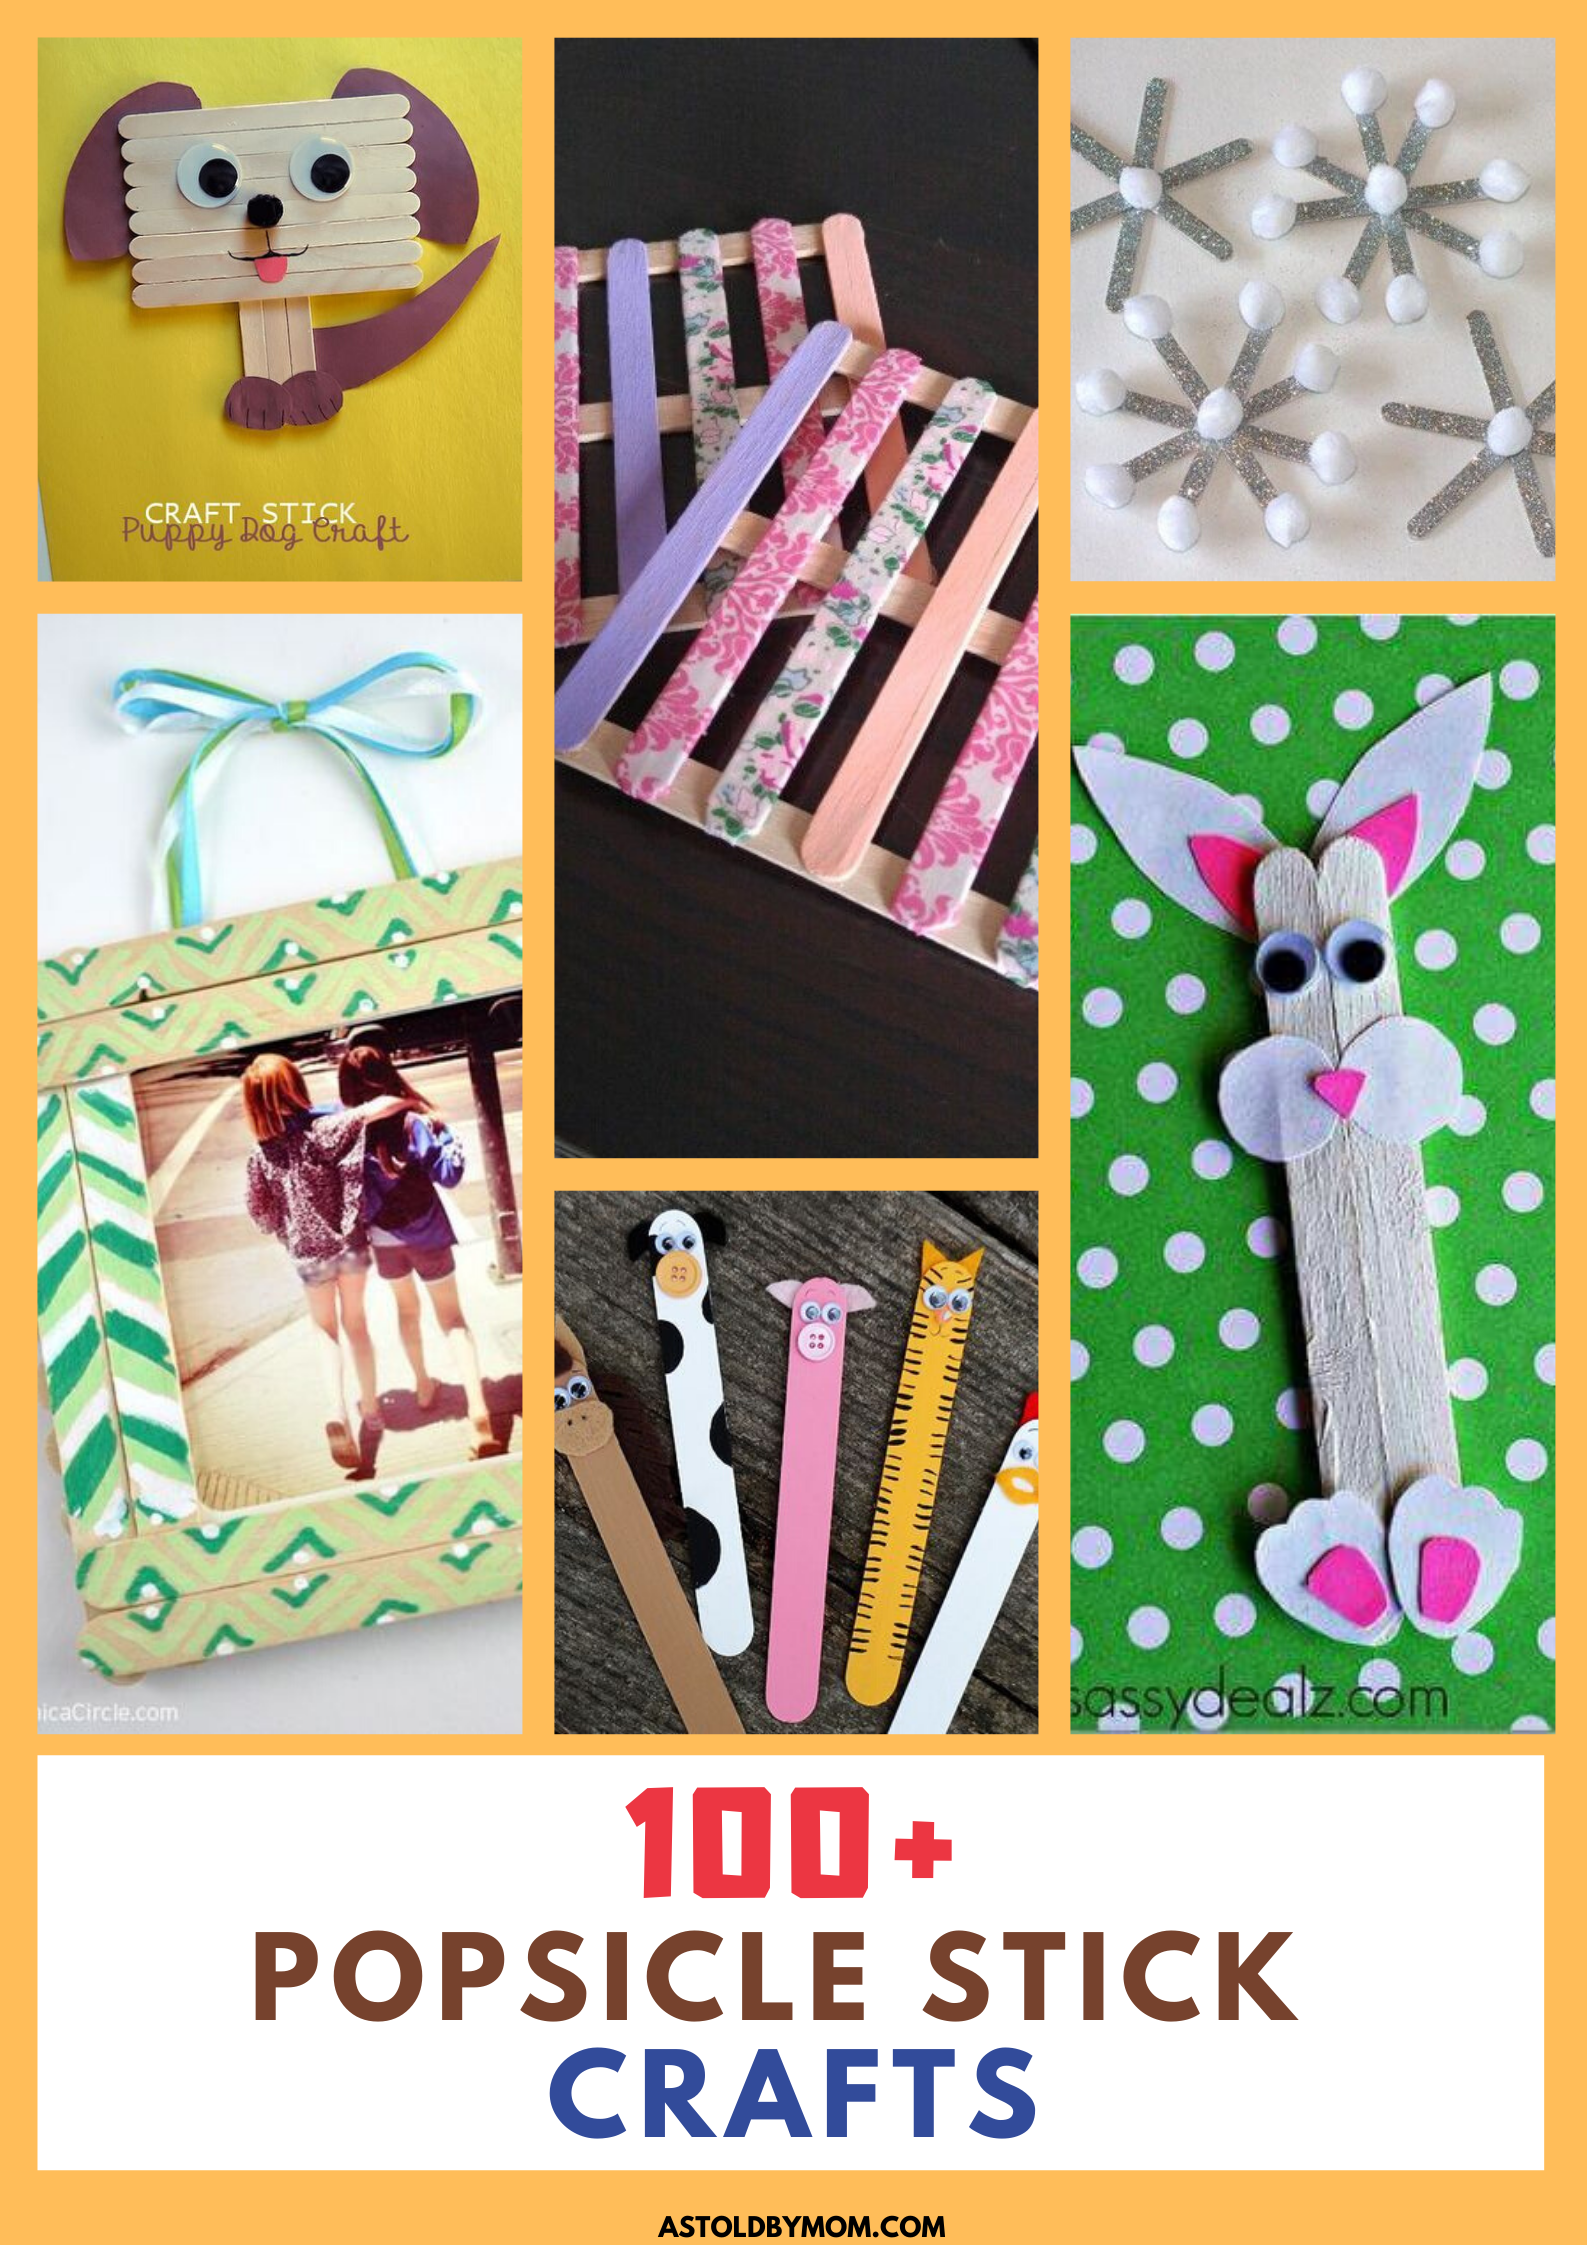 100 Popsicle Sticks Craft Ideas As Told By Mom In 2020 Craft Stick Crafts Crafts Popsicle Stick Crafts